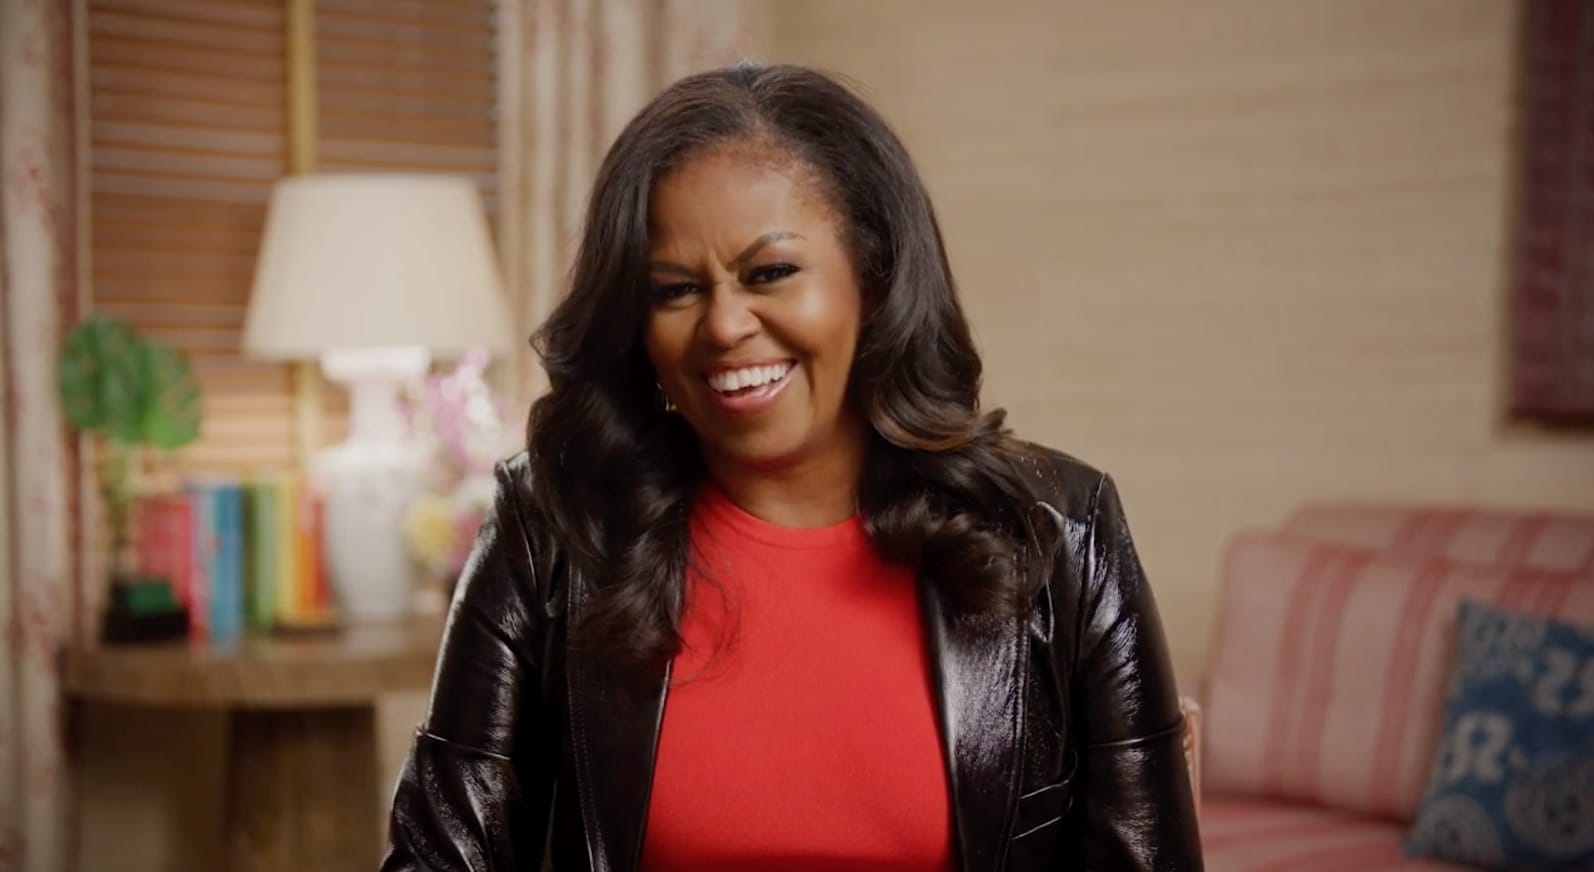 Michelle Obama reacts to Kimmel's 'sick' question about sex life with Barack - TheGrio